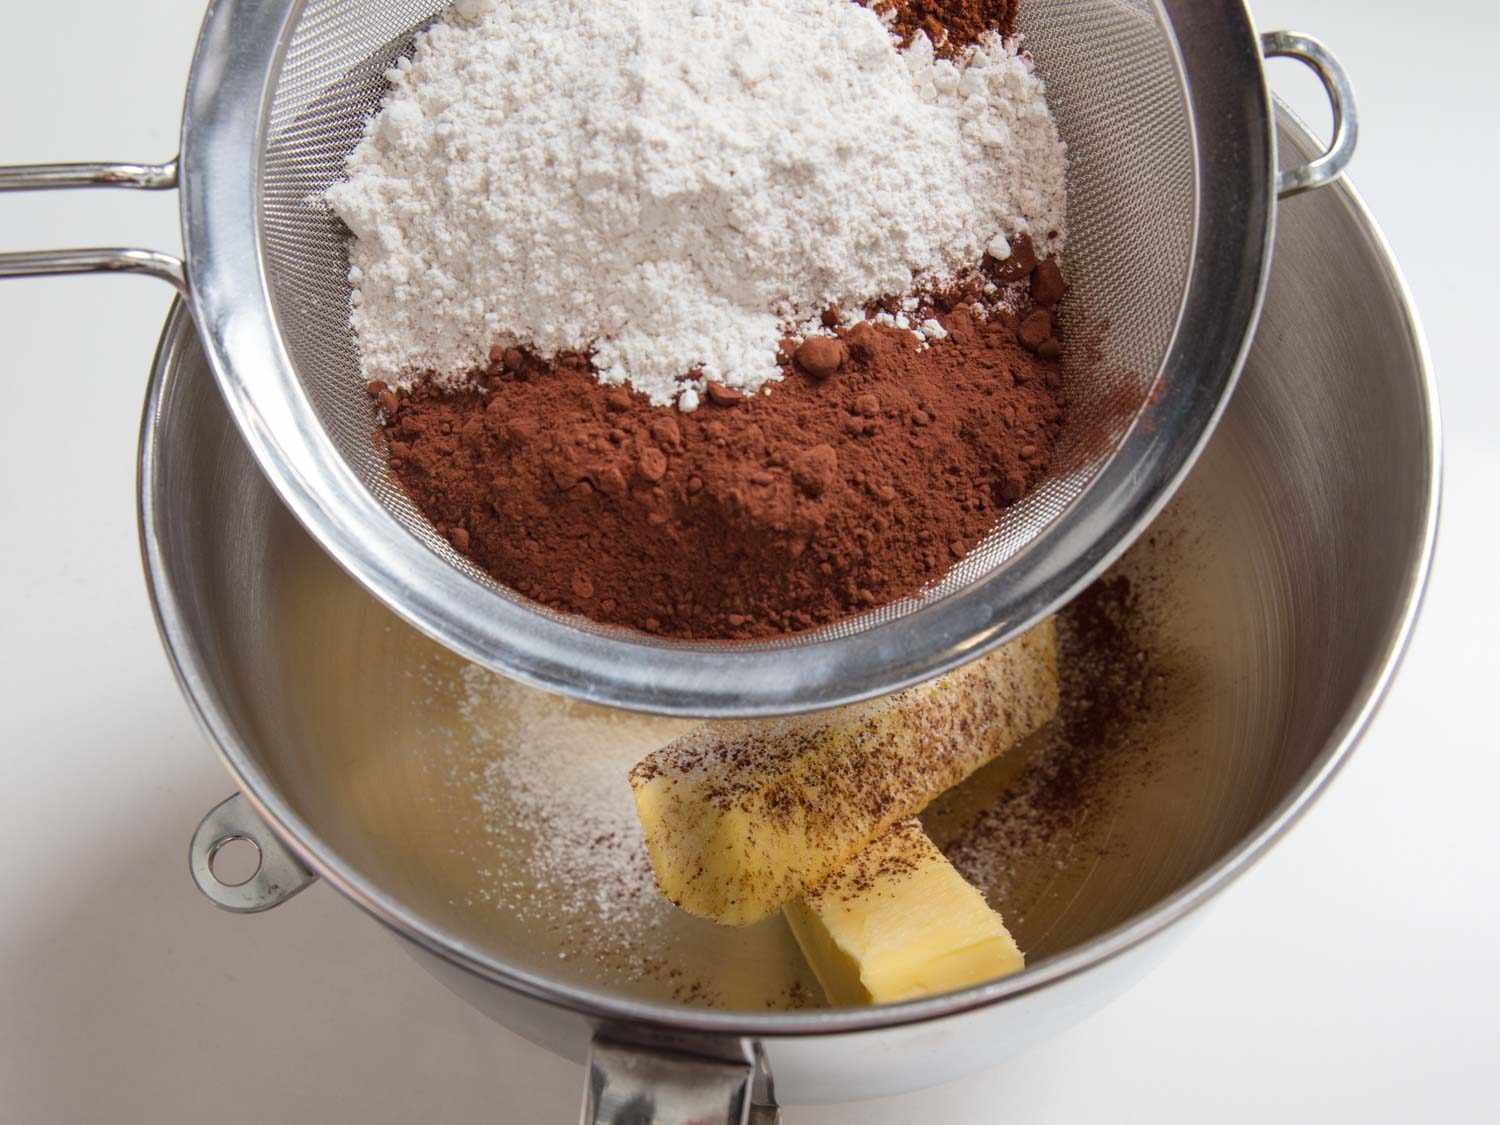 sifting cocoa and powdered sugar over butter